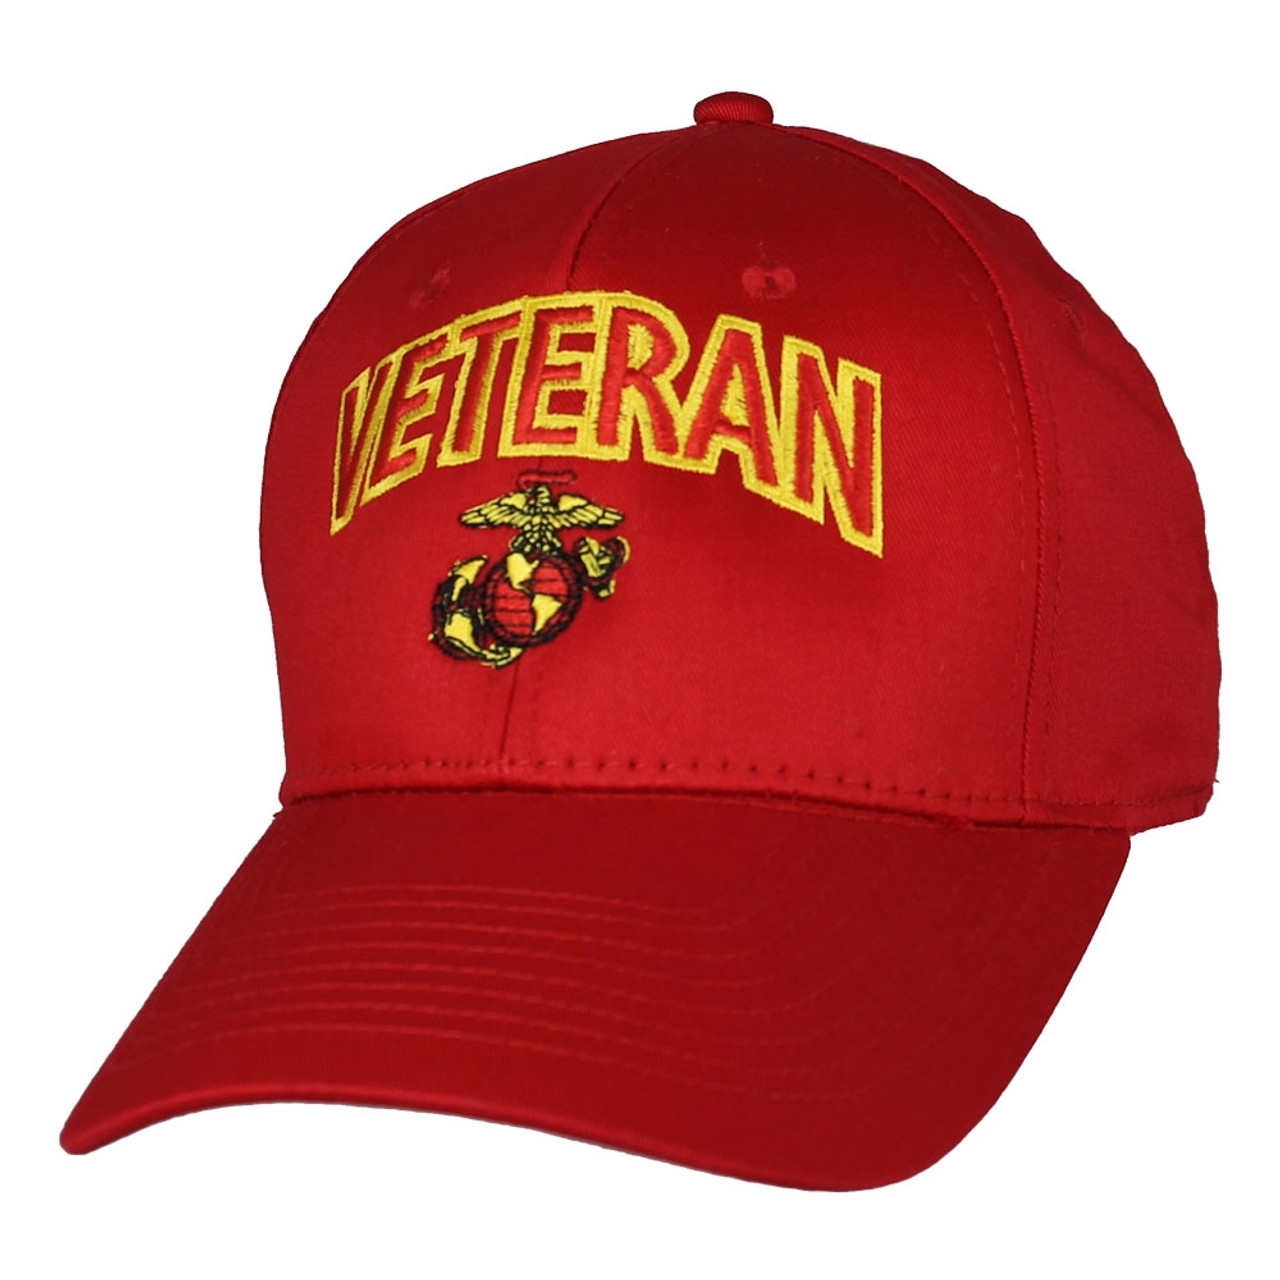 US MARINE CORPS VETERAN USA MADE Licensed EGA RED Military Hat Baseball Cap